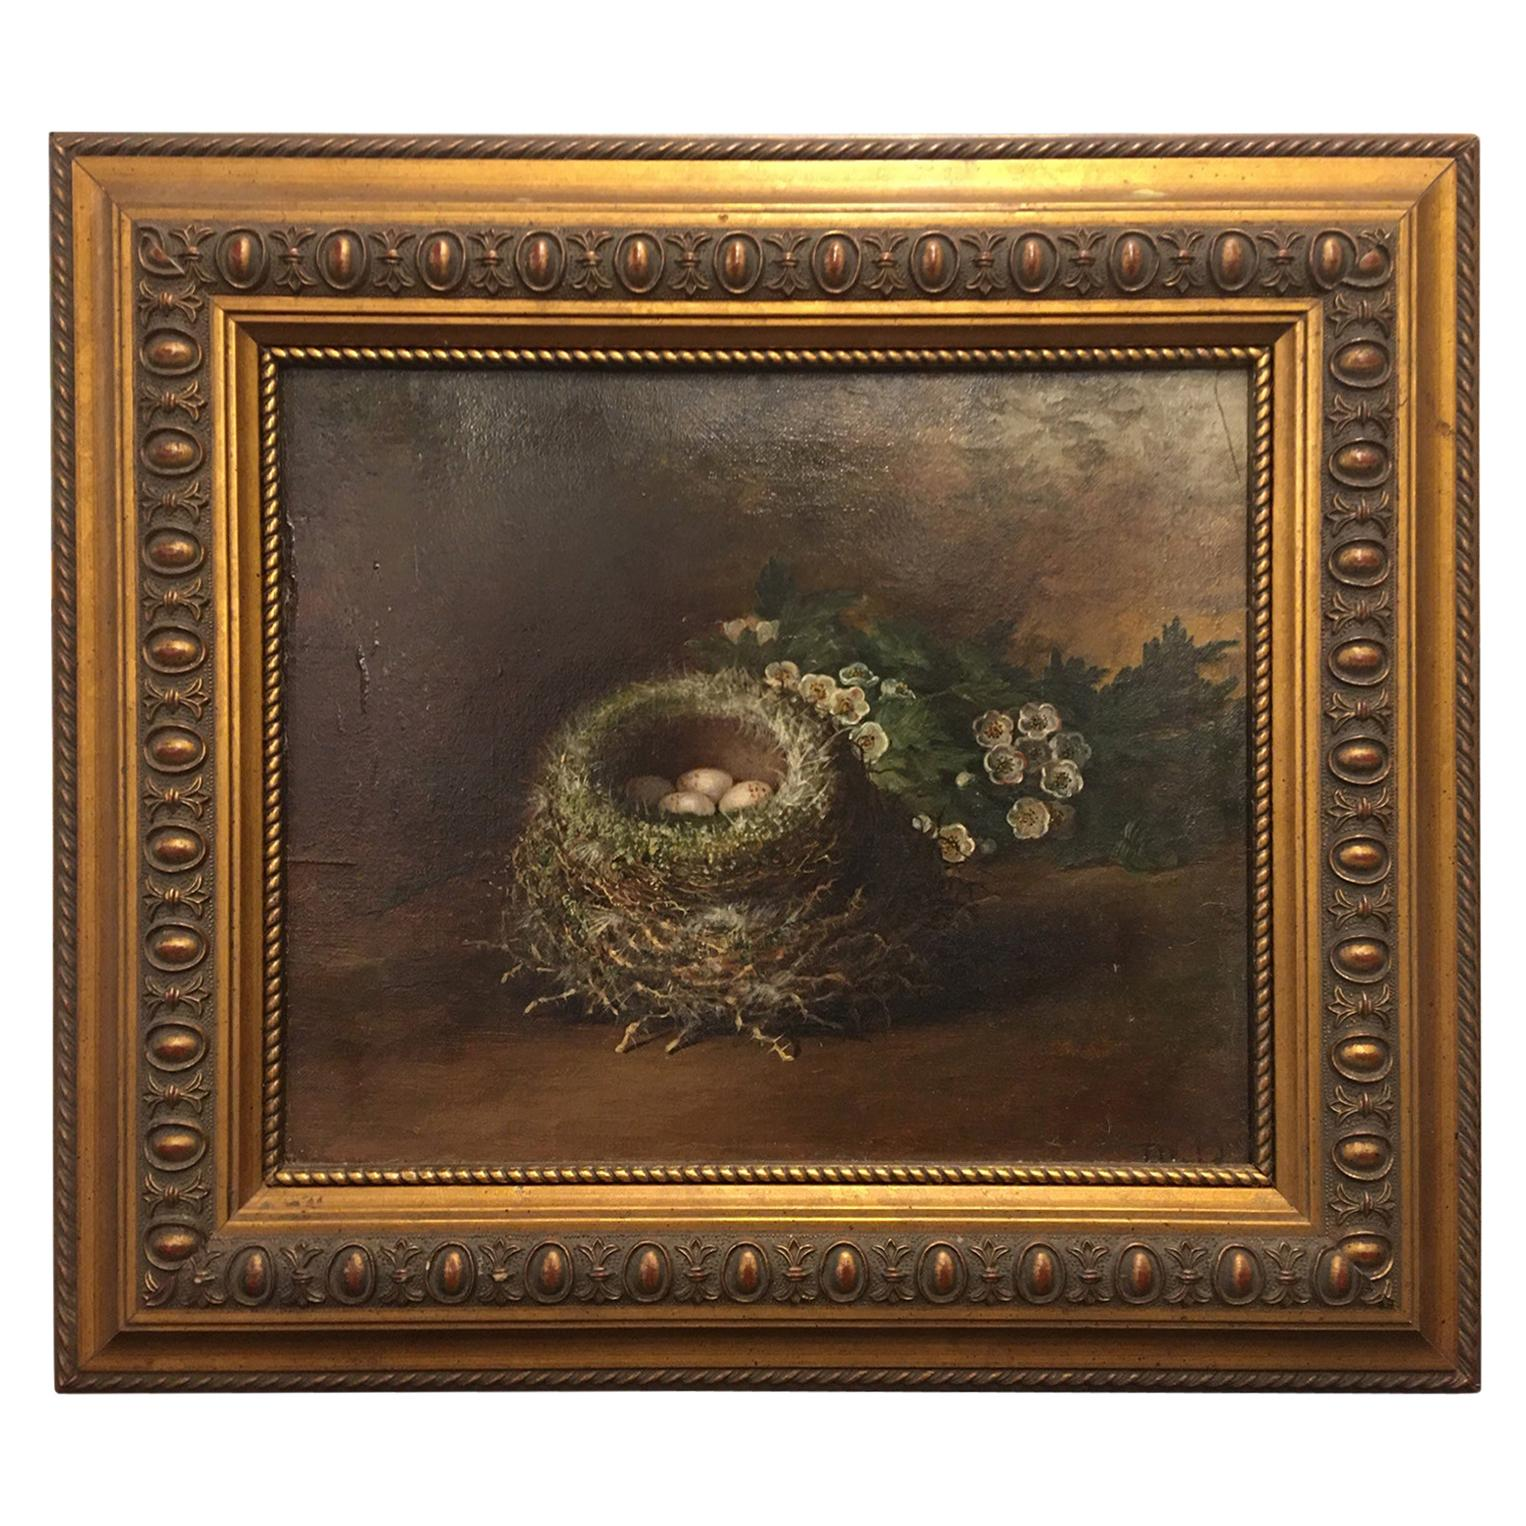 """British Framed Oil on Canvas Painting """"The Bird's Nest"""", Tom Hold, 19th Century"""